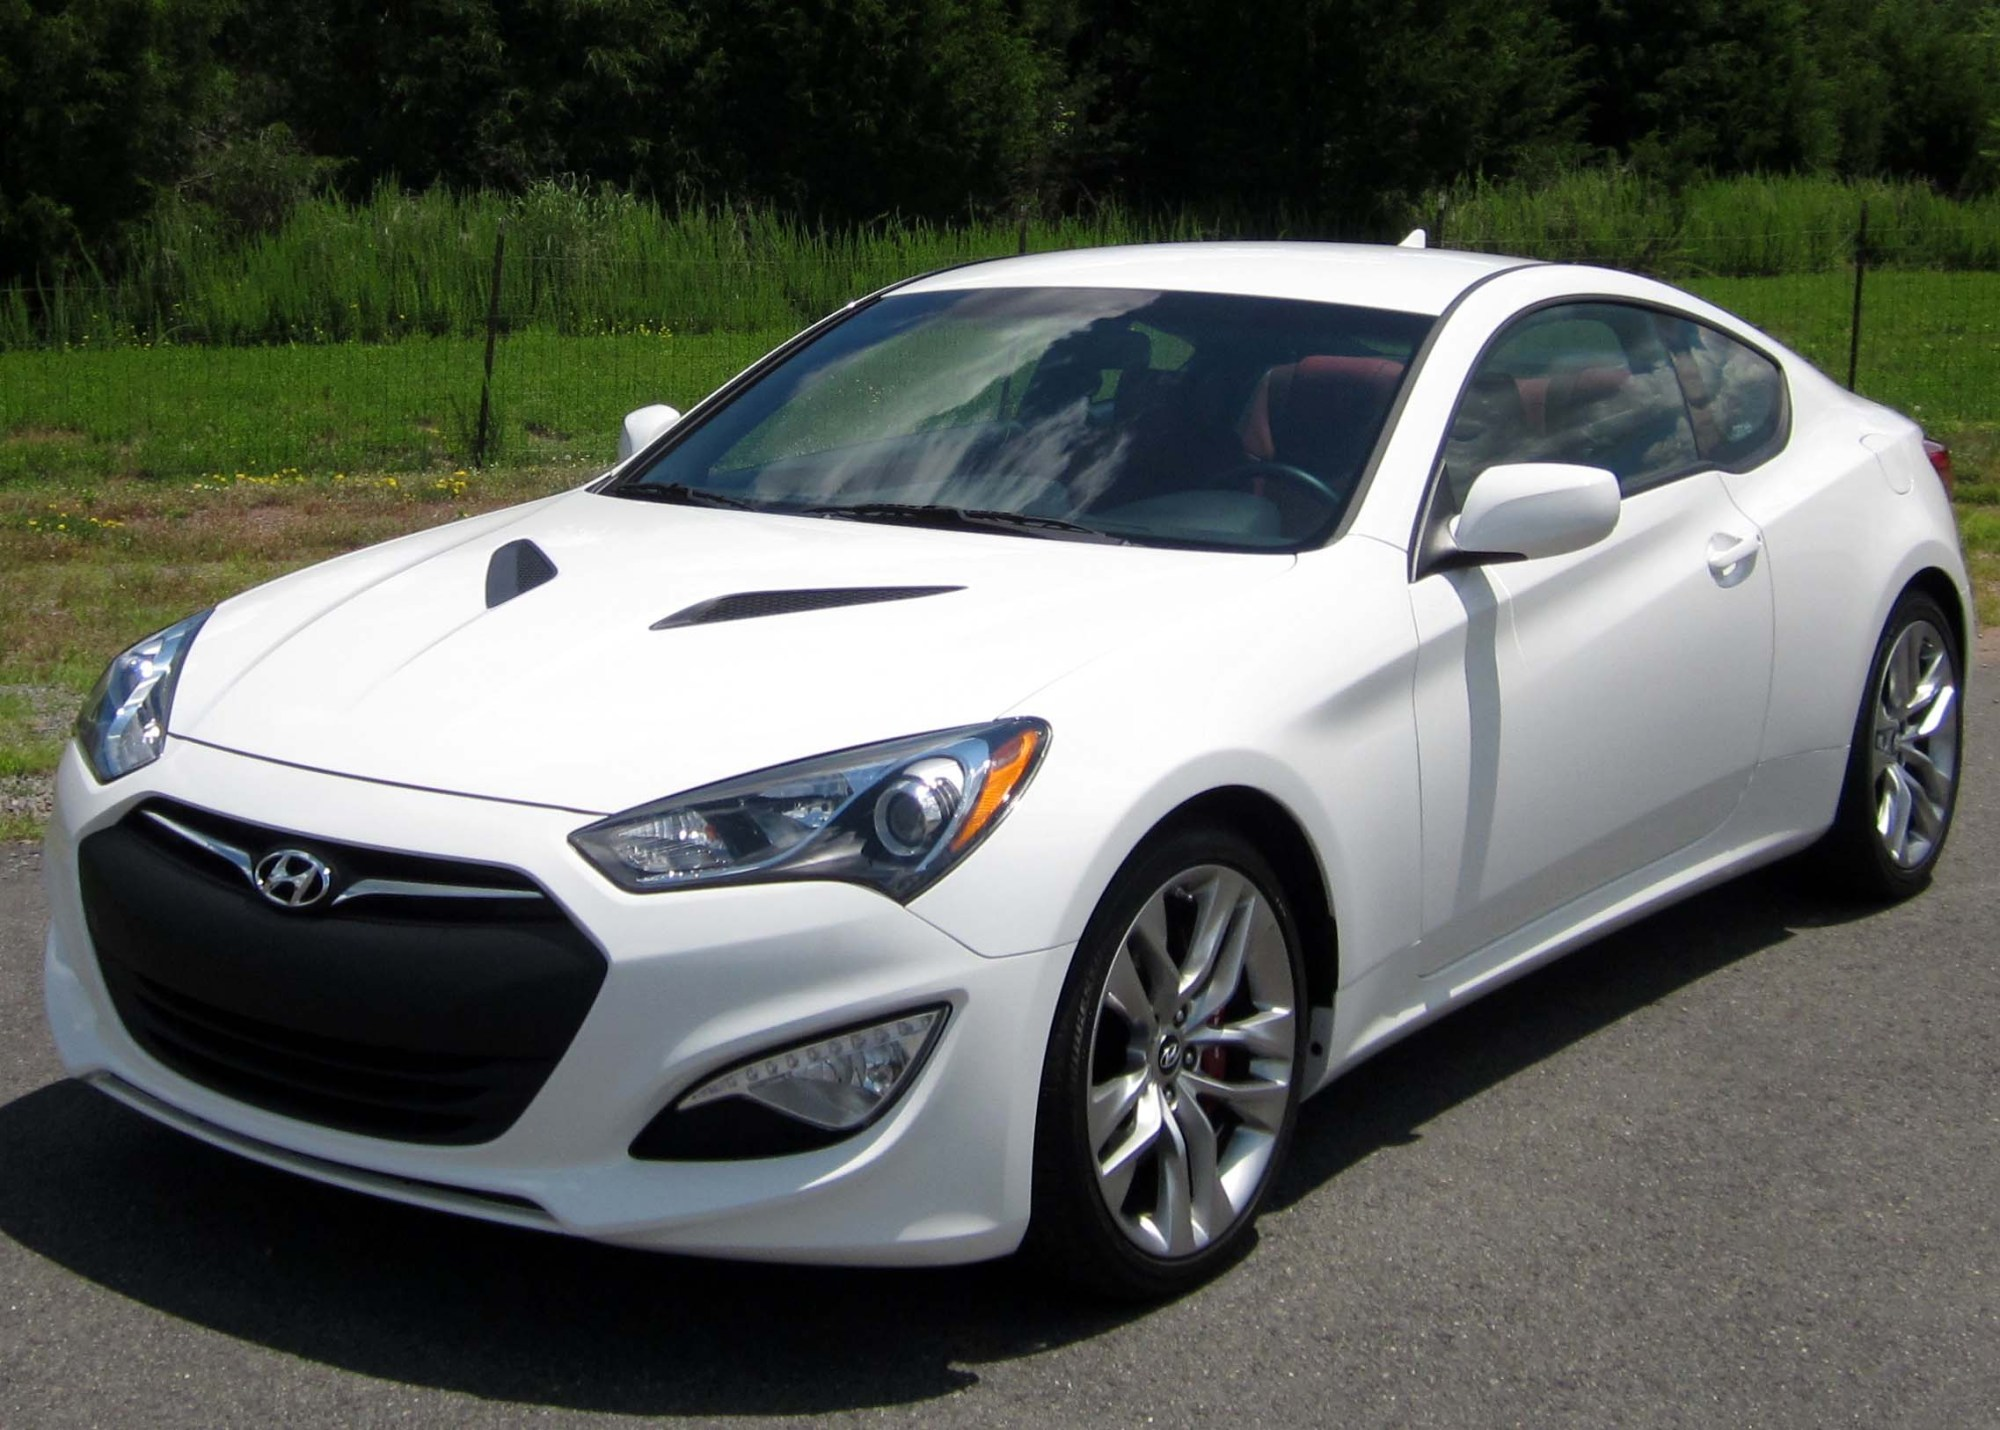 hight resolution of file 2013 hyundai genesis coupe 3 8 r spec 06 15